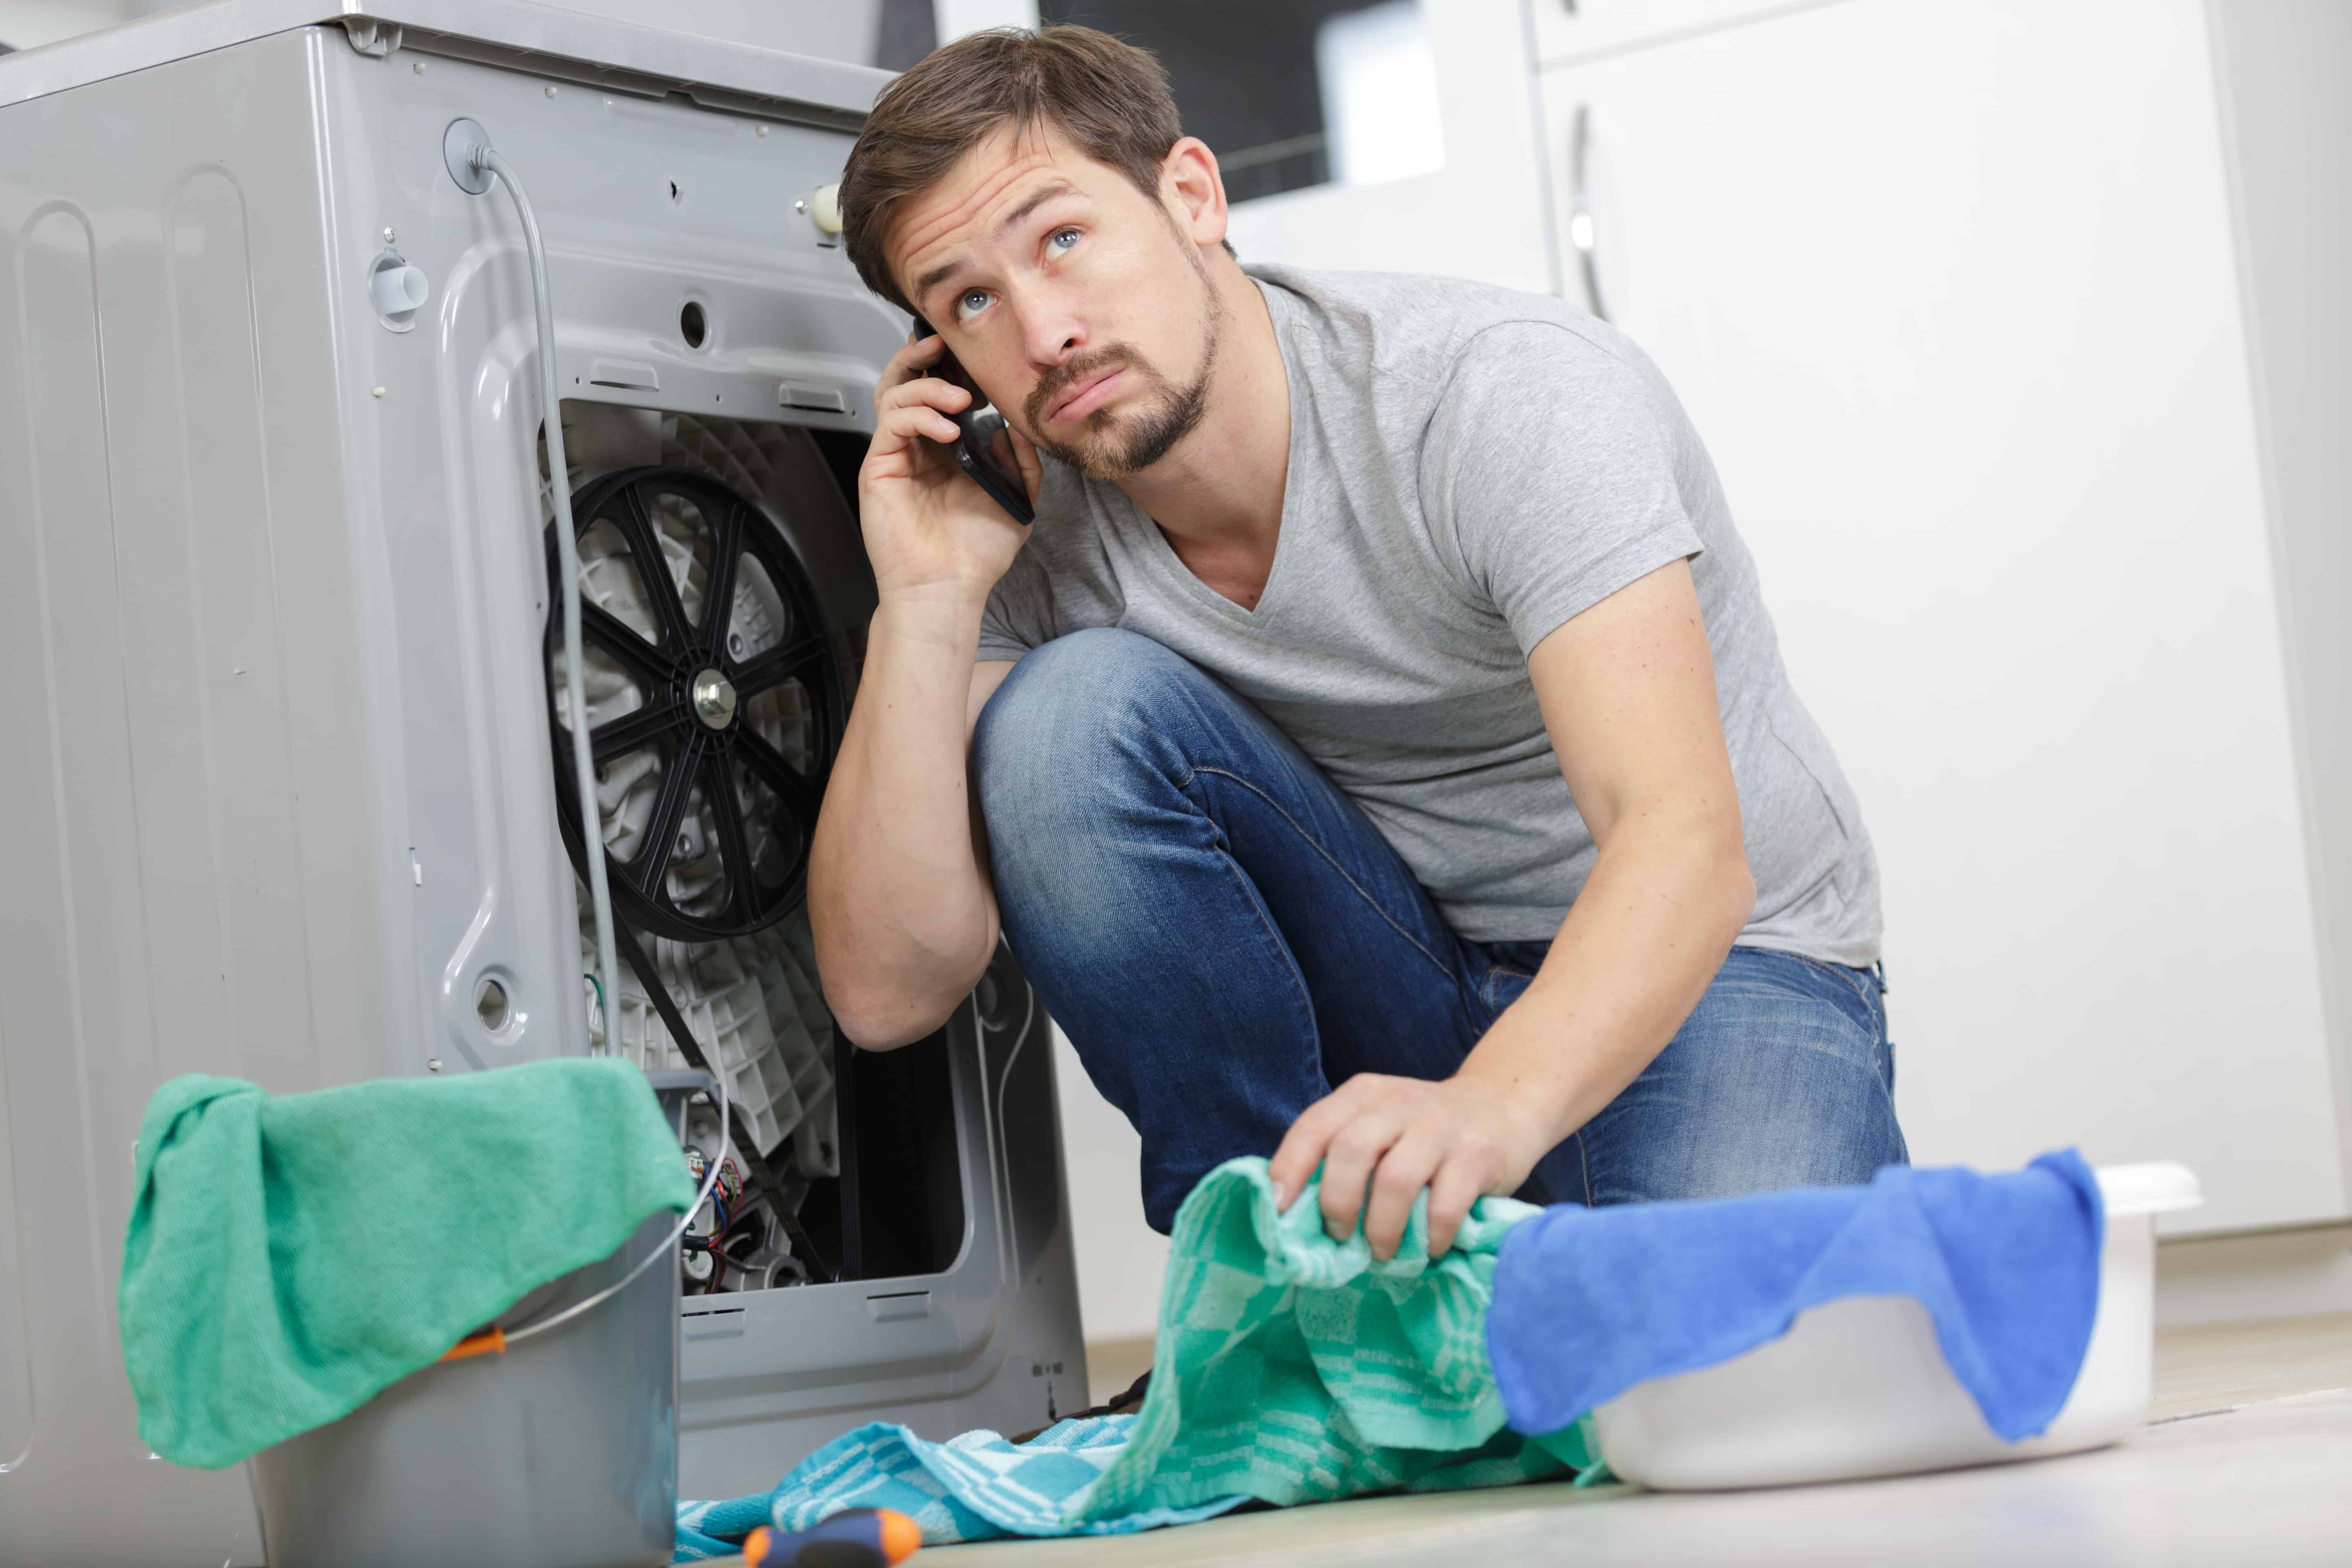 Man Cleaning Up After a Broken Washer